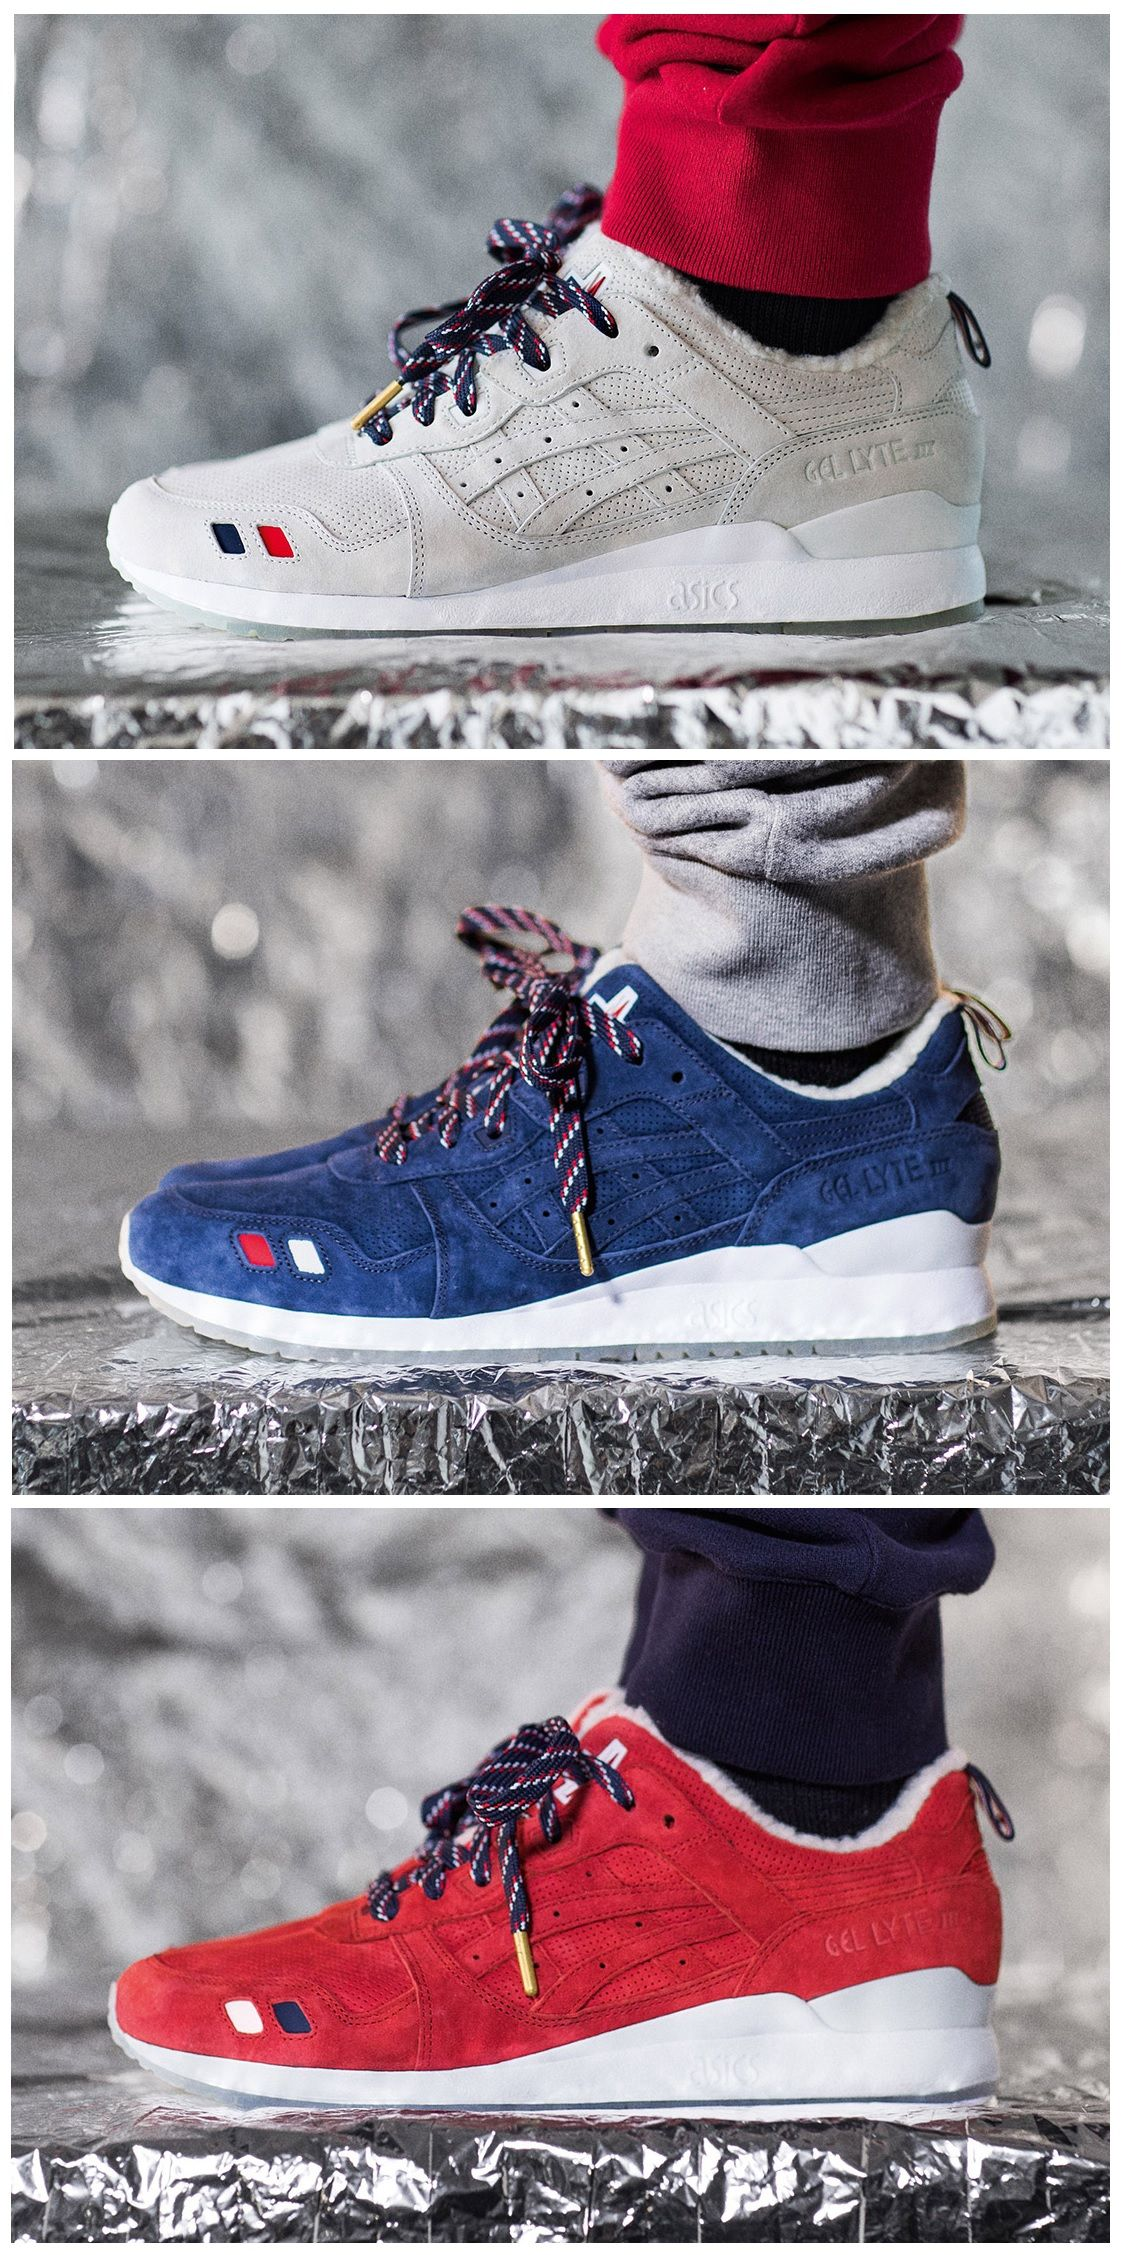 huge selection of 8420a 1bd96 Moncler x KITH x Asics Gel Lyte III